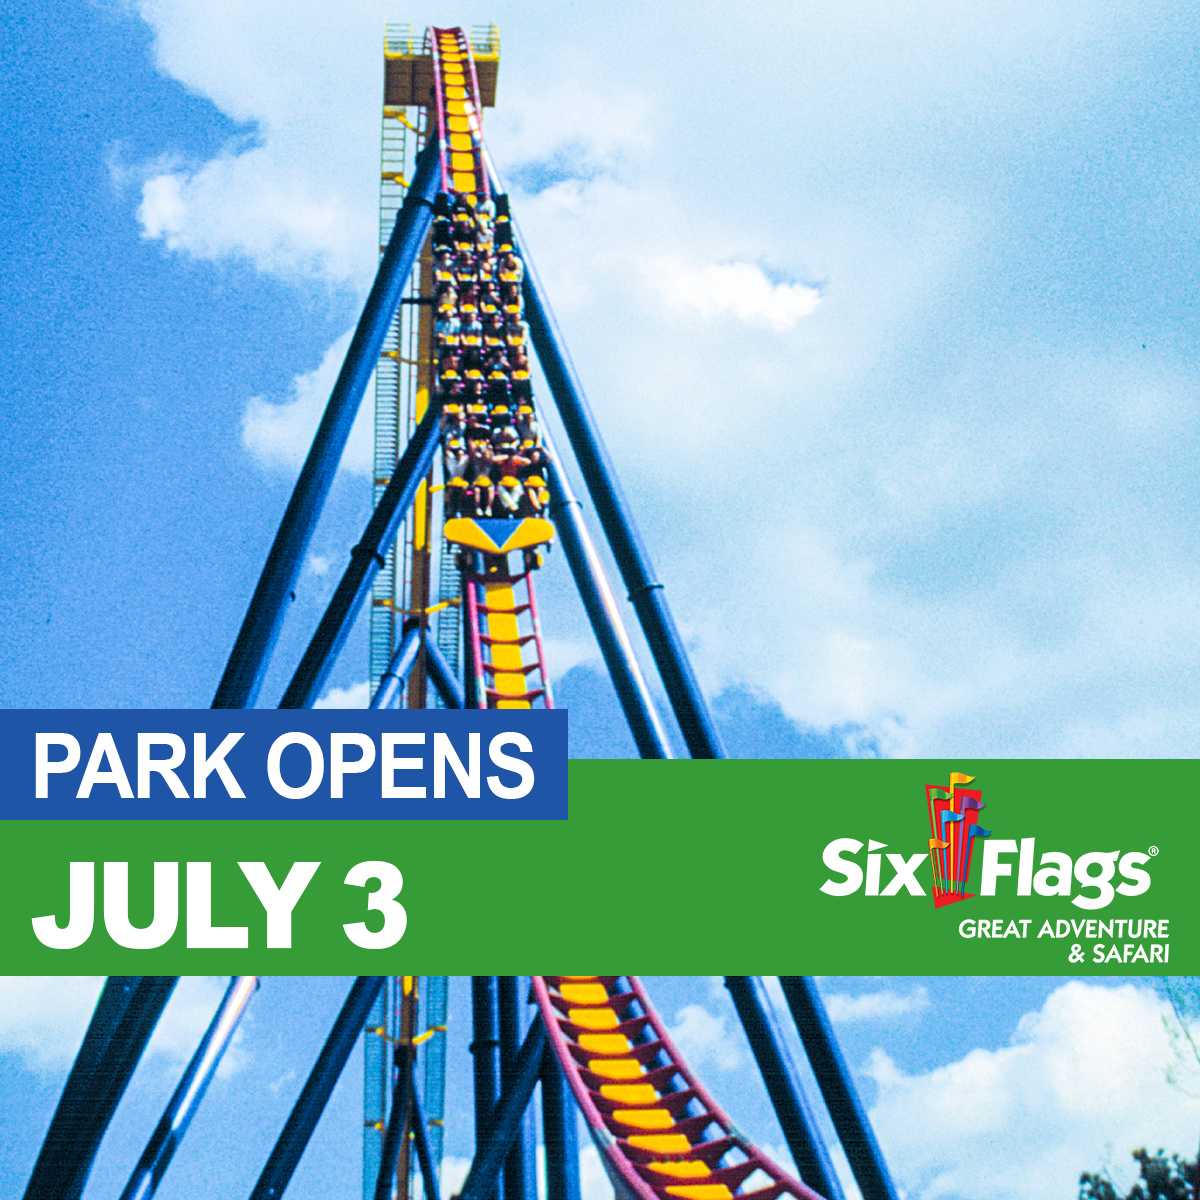 Six Flags Great Adventure Reopens July 3, 2020